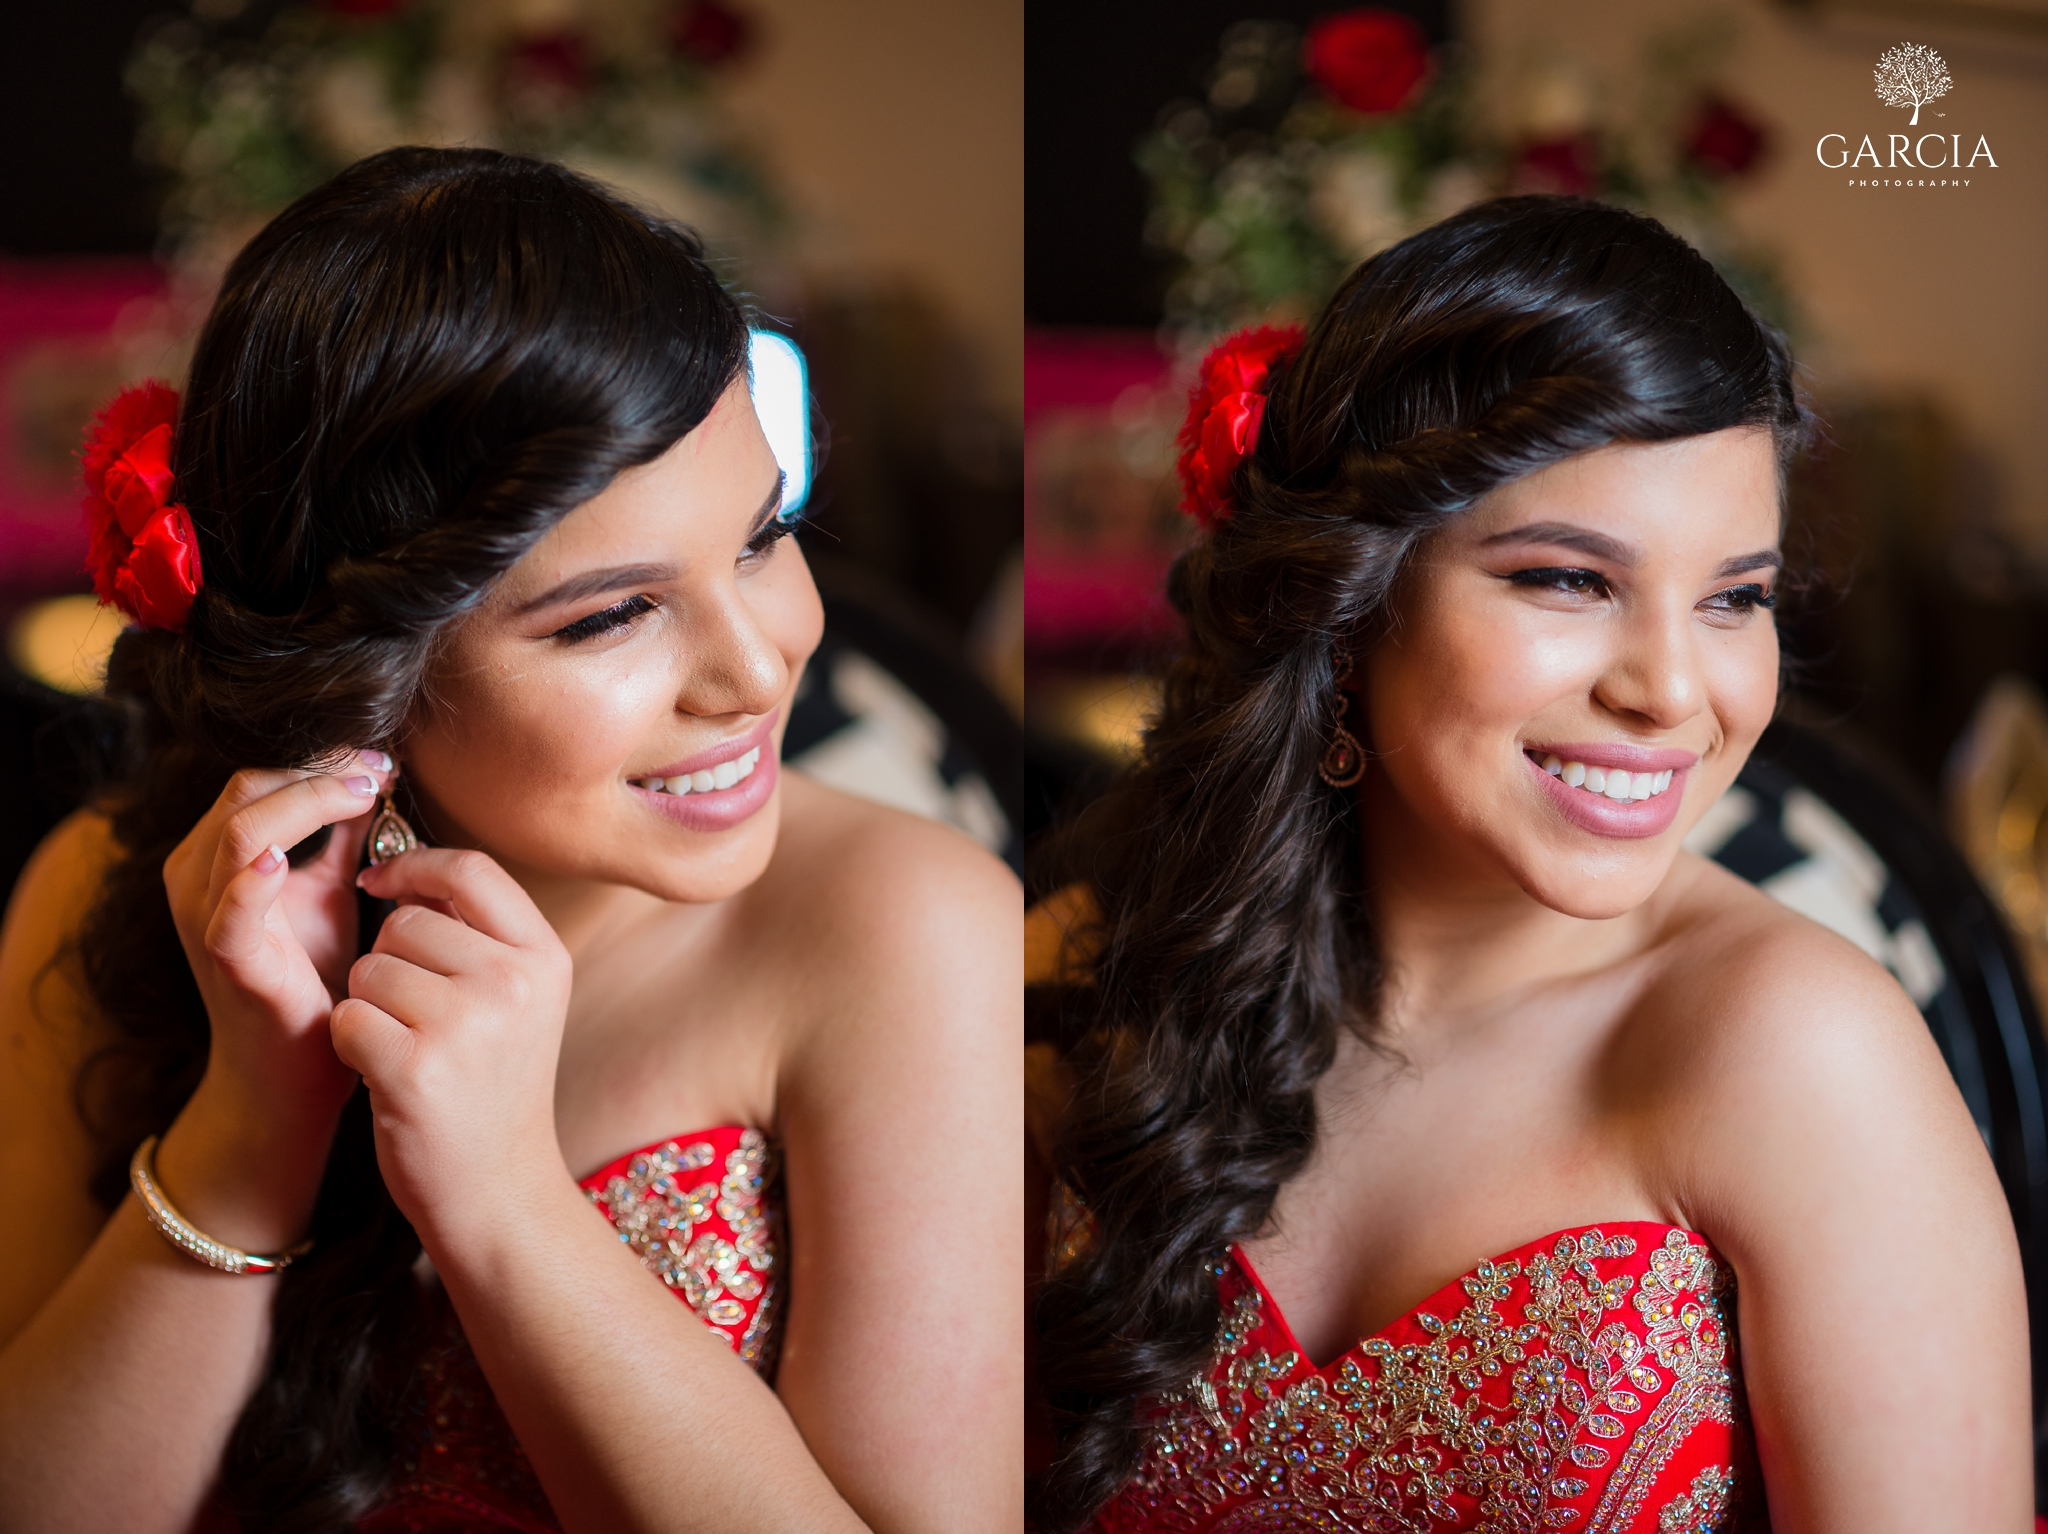 Jesalyns-Quince-Garcia-Photography-7568.jpg